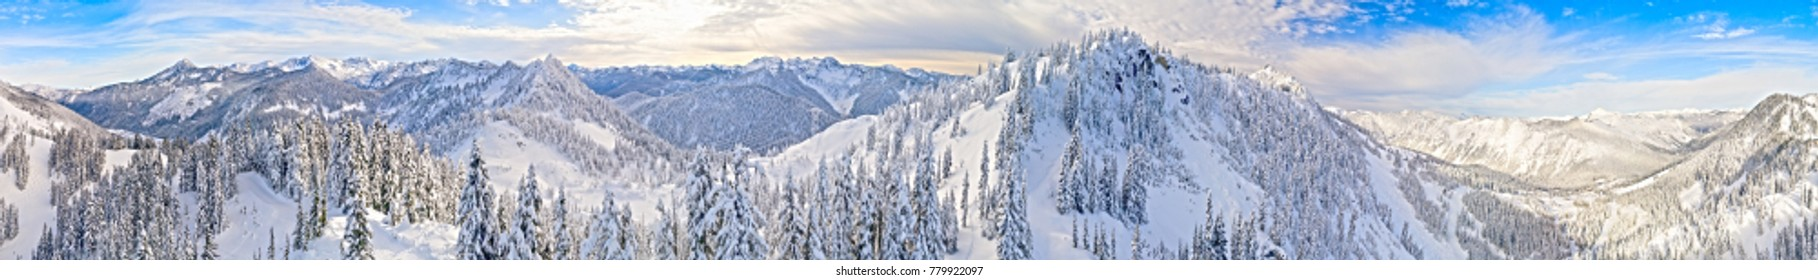 Stevens Pass Washington Ski Area 360 Aerial Panoramic View